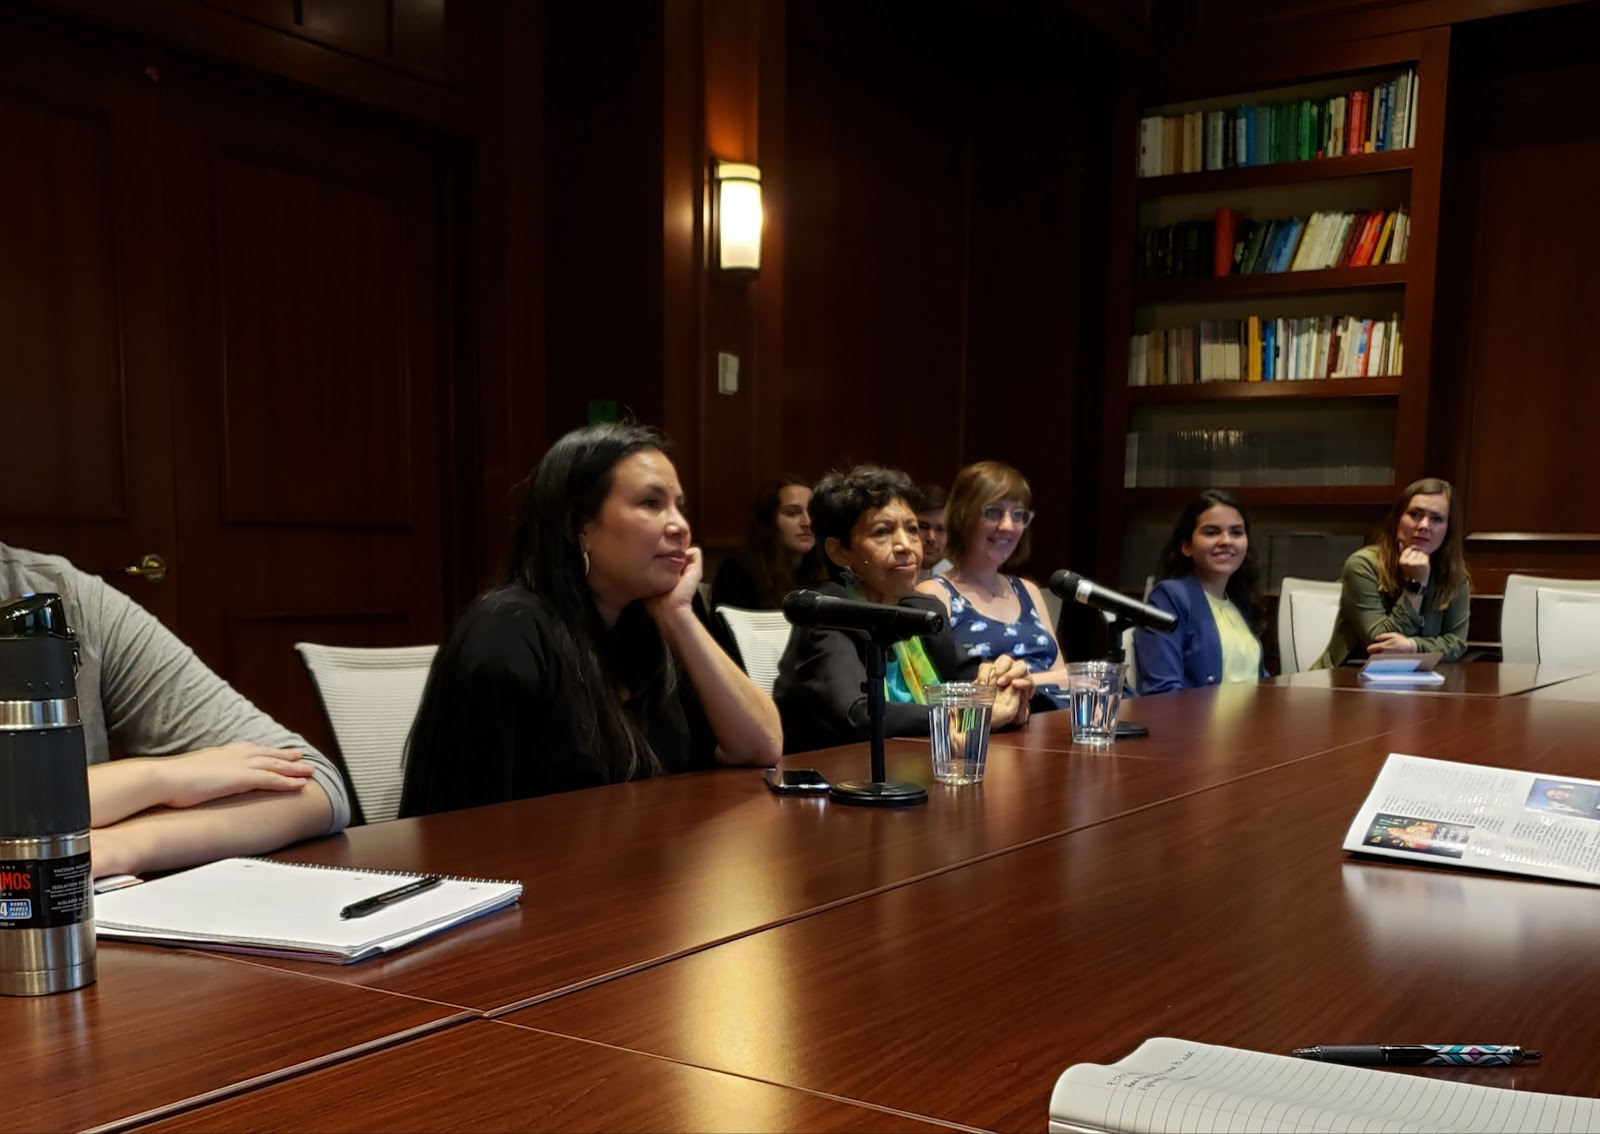 Hillary Rodham Clinton Award recipients Rosa Anaya and Marta Velásquez speak with Georgetown students during a roundtable discussion at the Center for Contemporary Arab Studies on September 27. (Eduardo Torres, SFS '23)